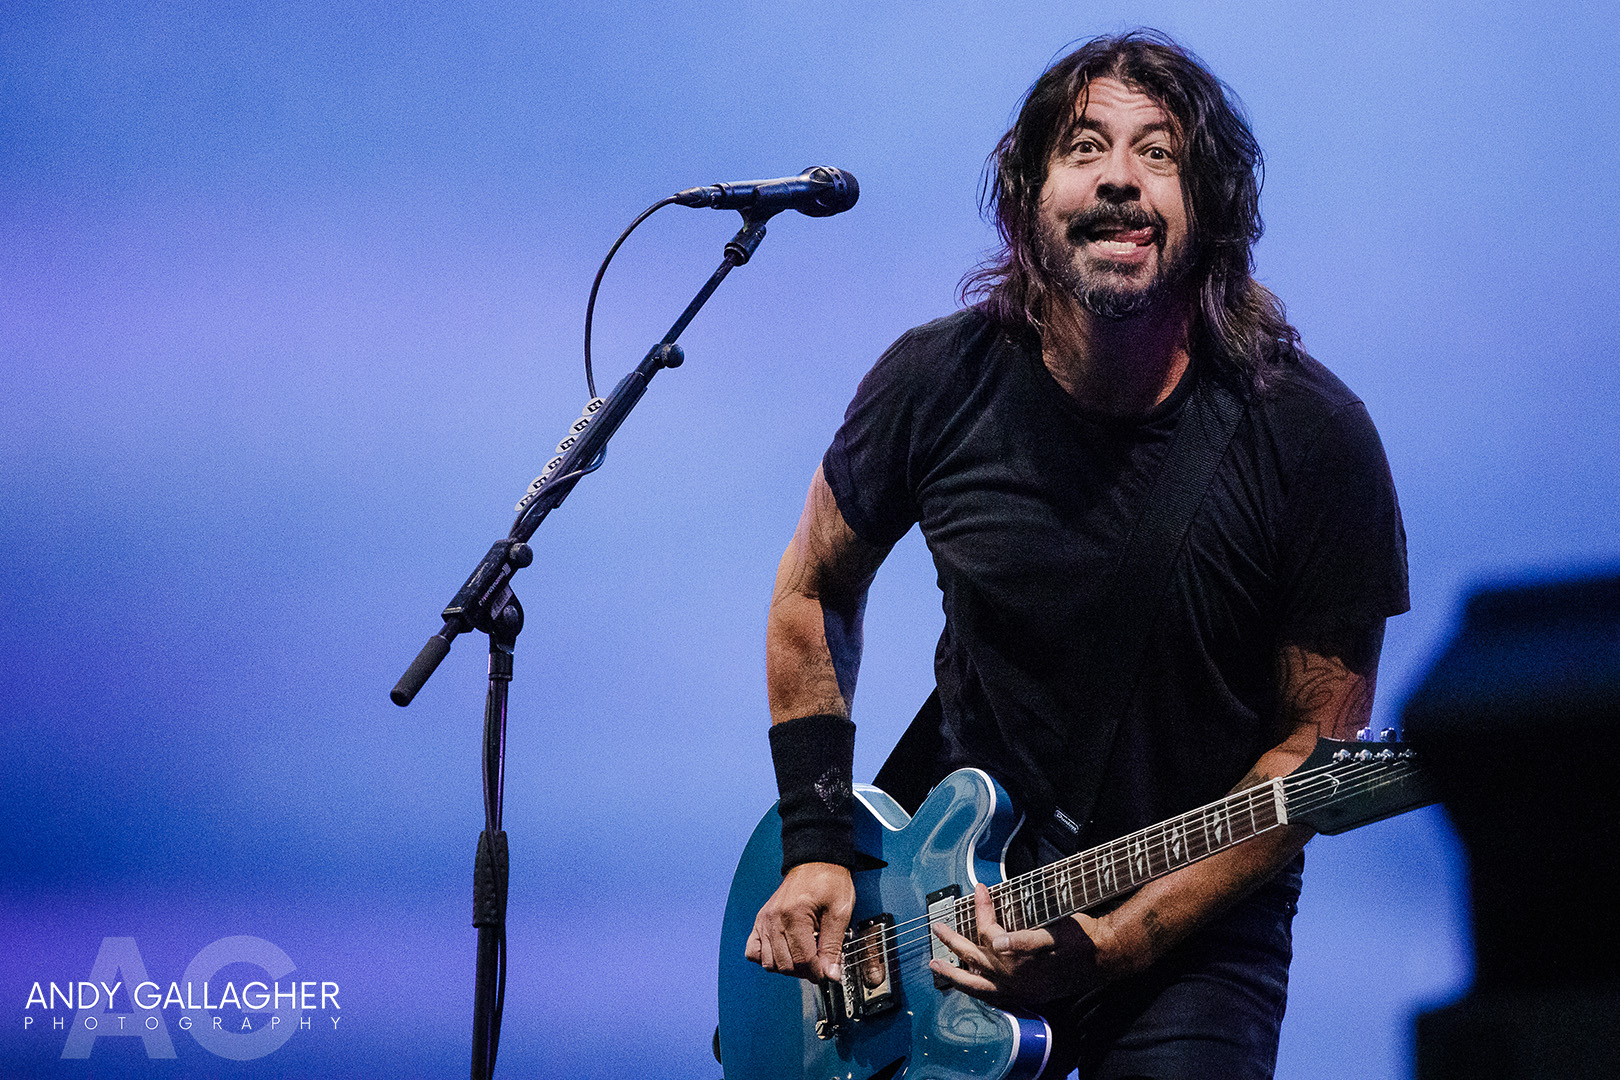 Dave Grohl Just Stuck His Tongue Out At Me…